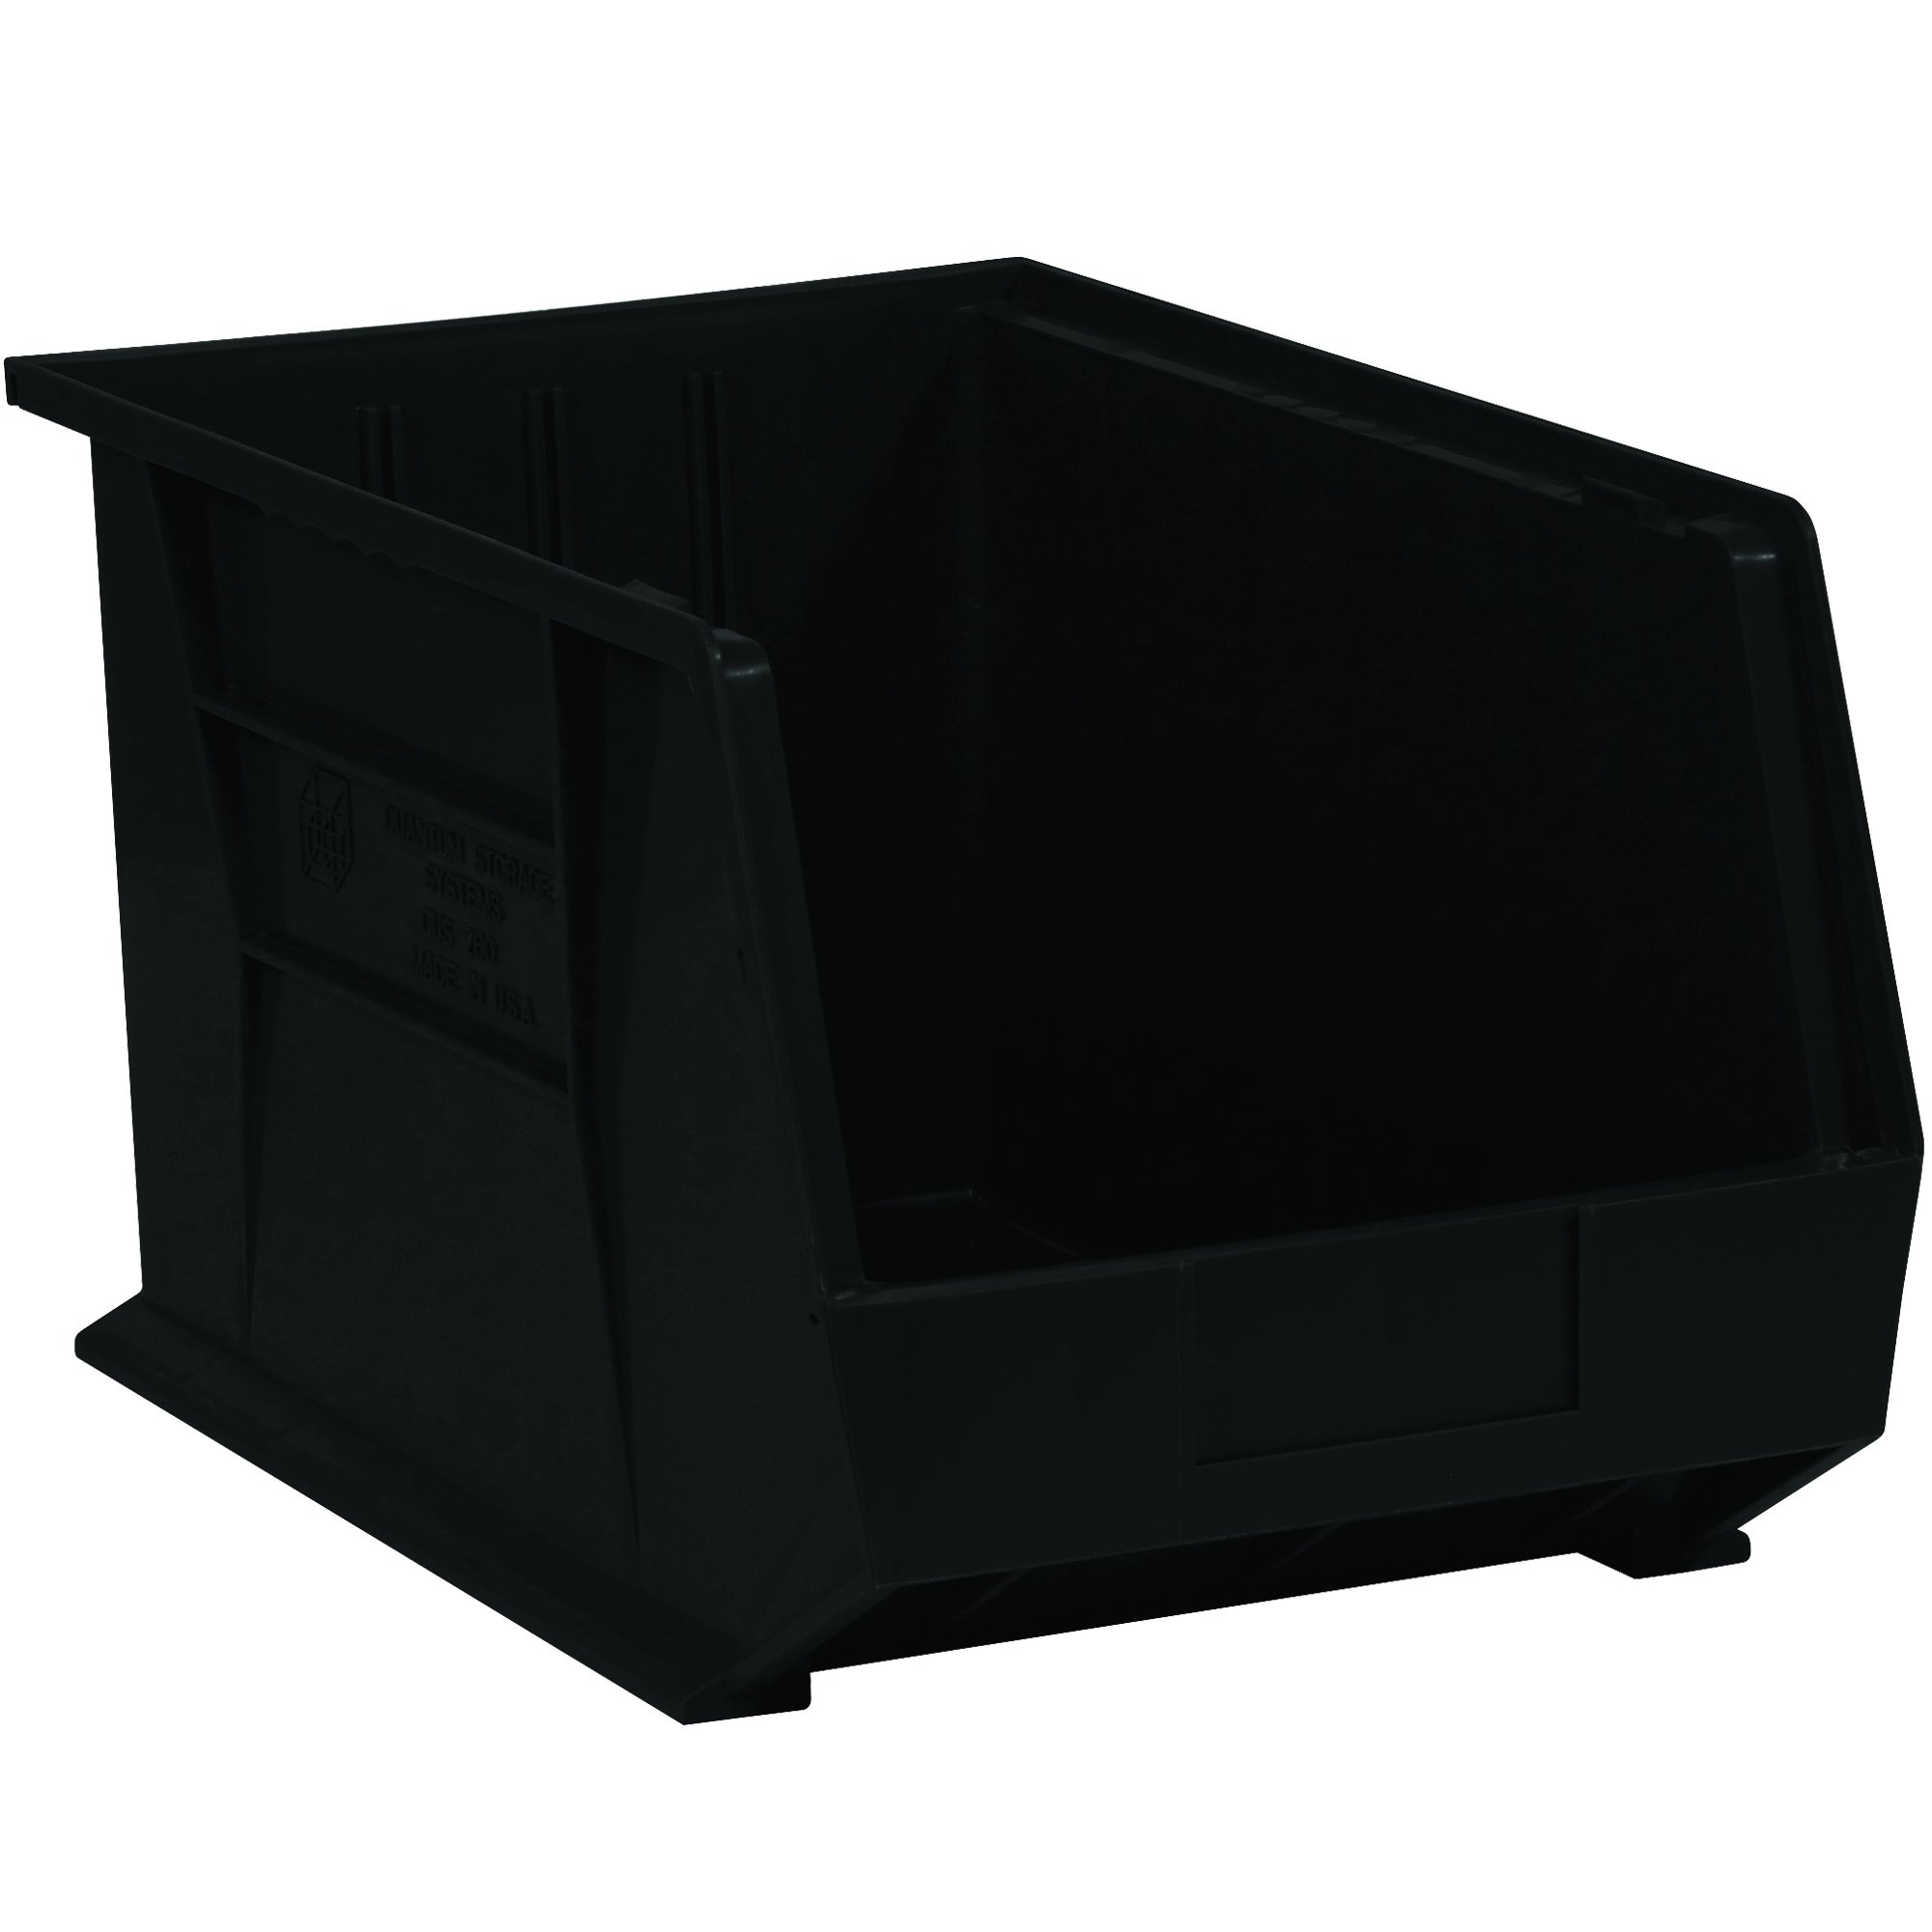 "Aviditi BINP1611K Plastic Stack and Hang Bin Boxes, 16"" x 11"" x 8"", Black (Pack of 4)"